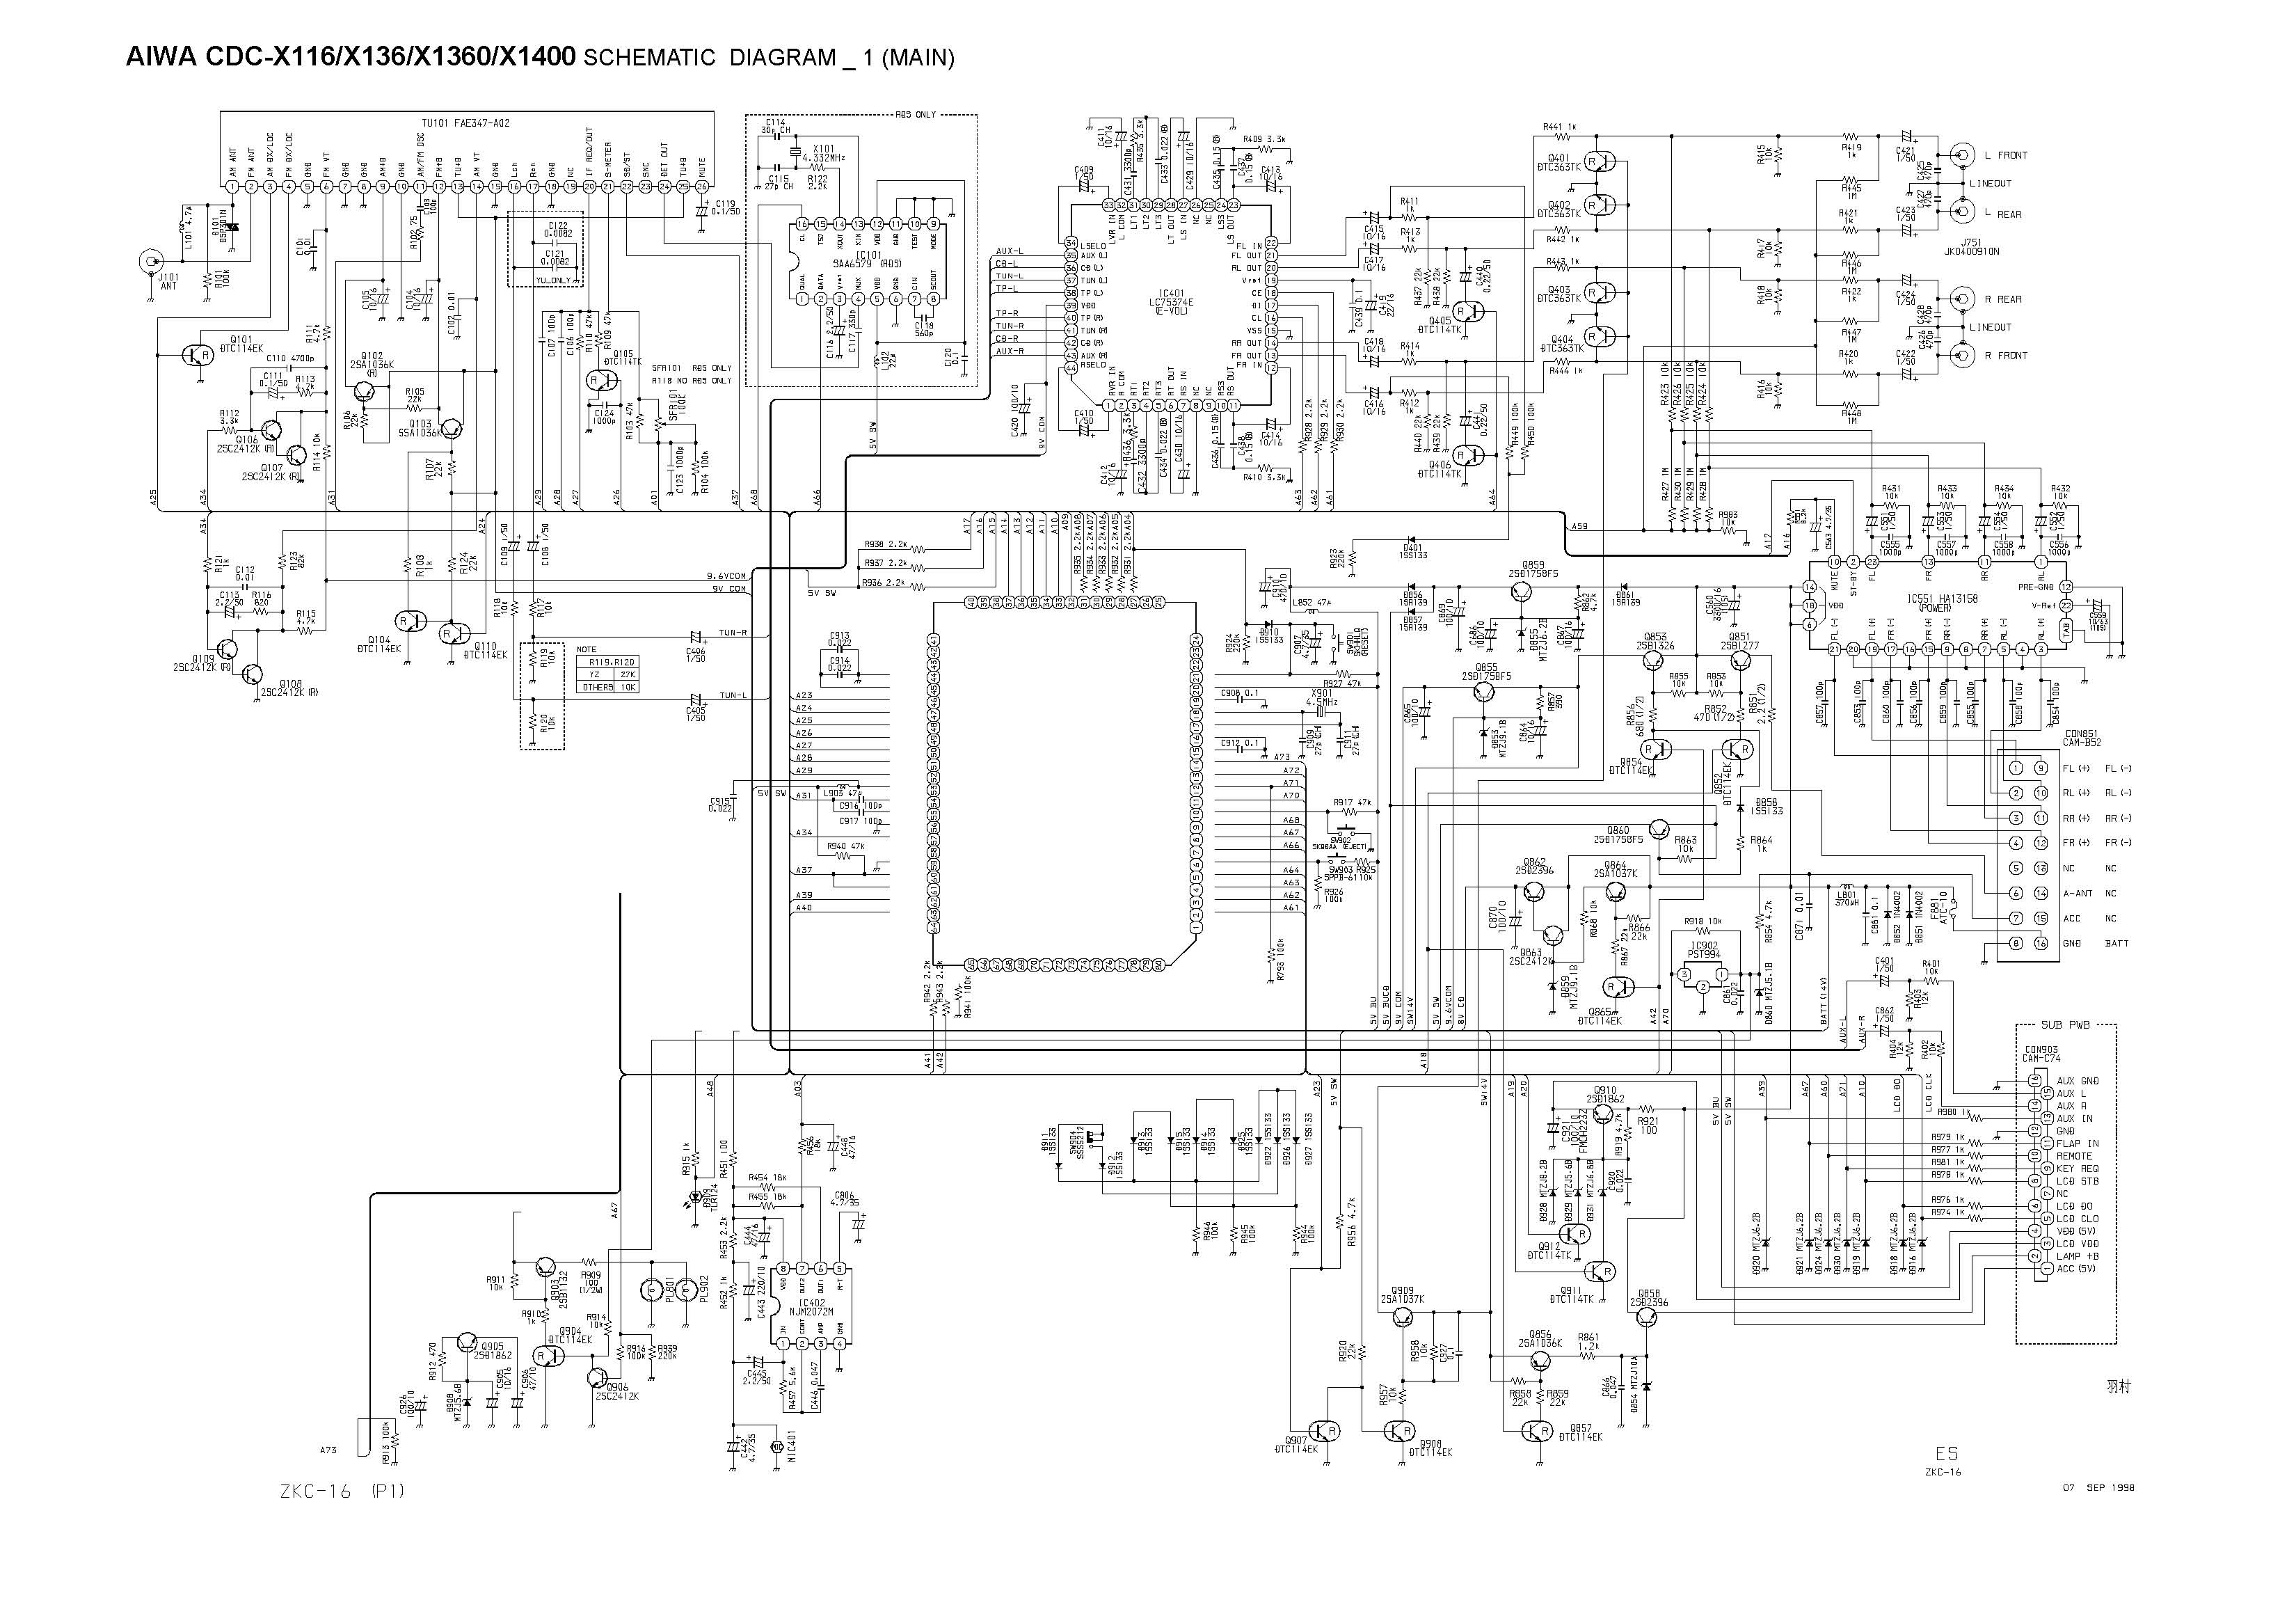 Aiwa CDC-X1400 Schematic Diagram Main / Front in PDF